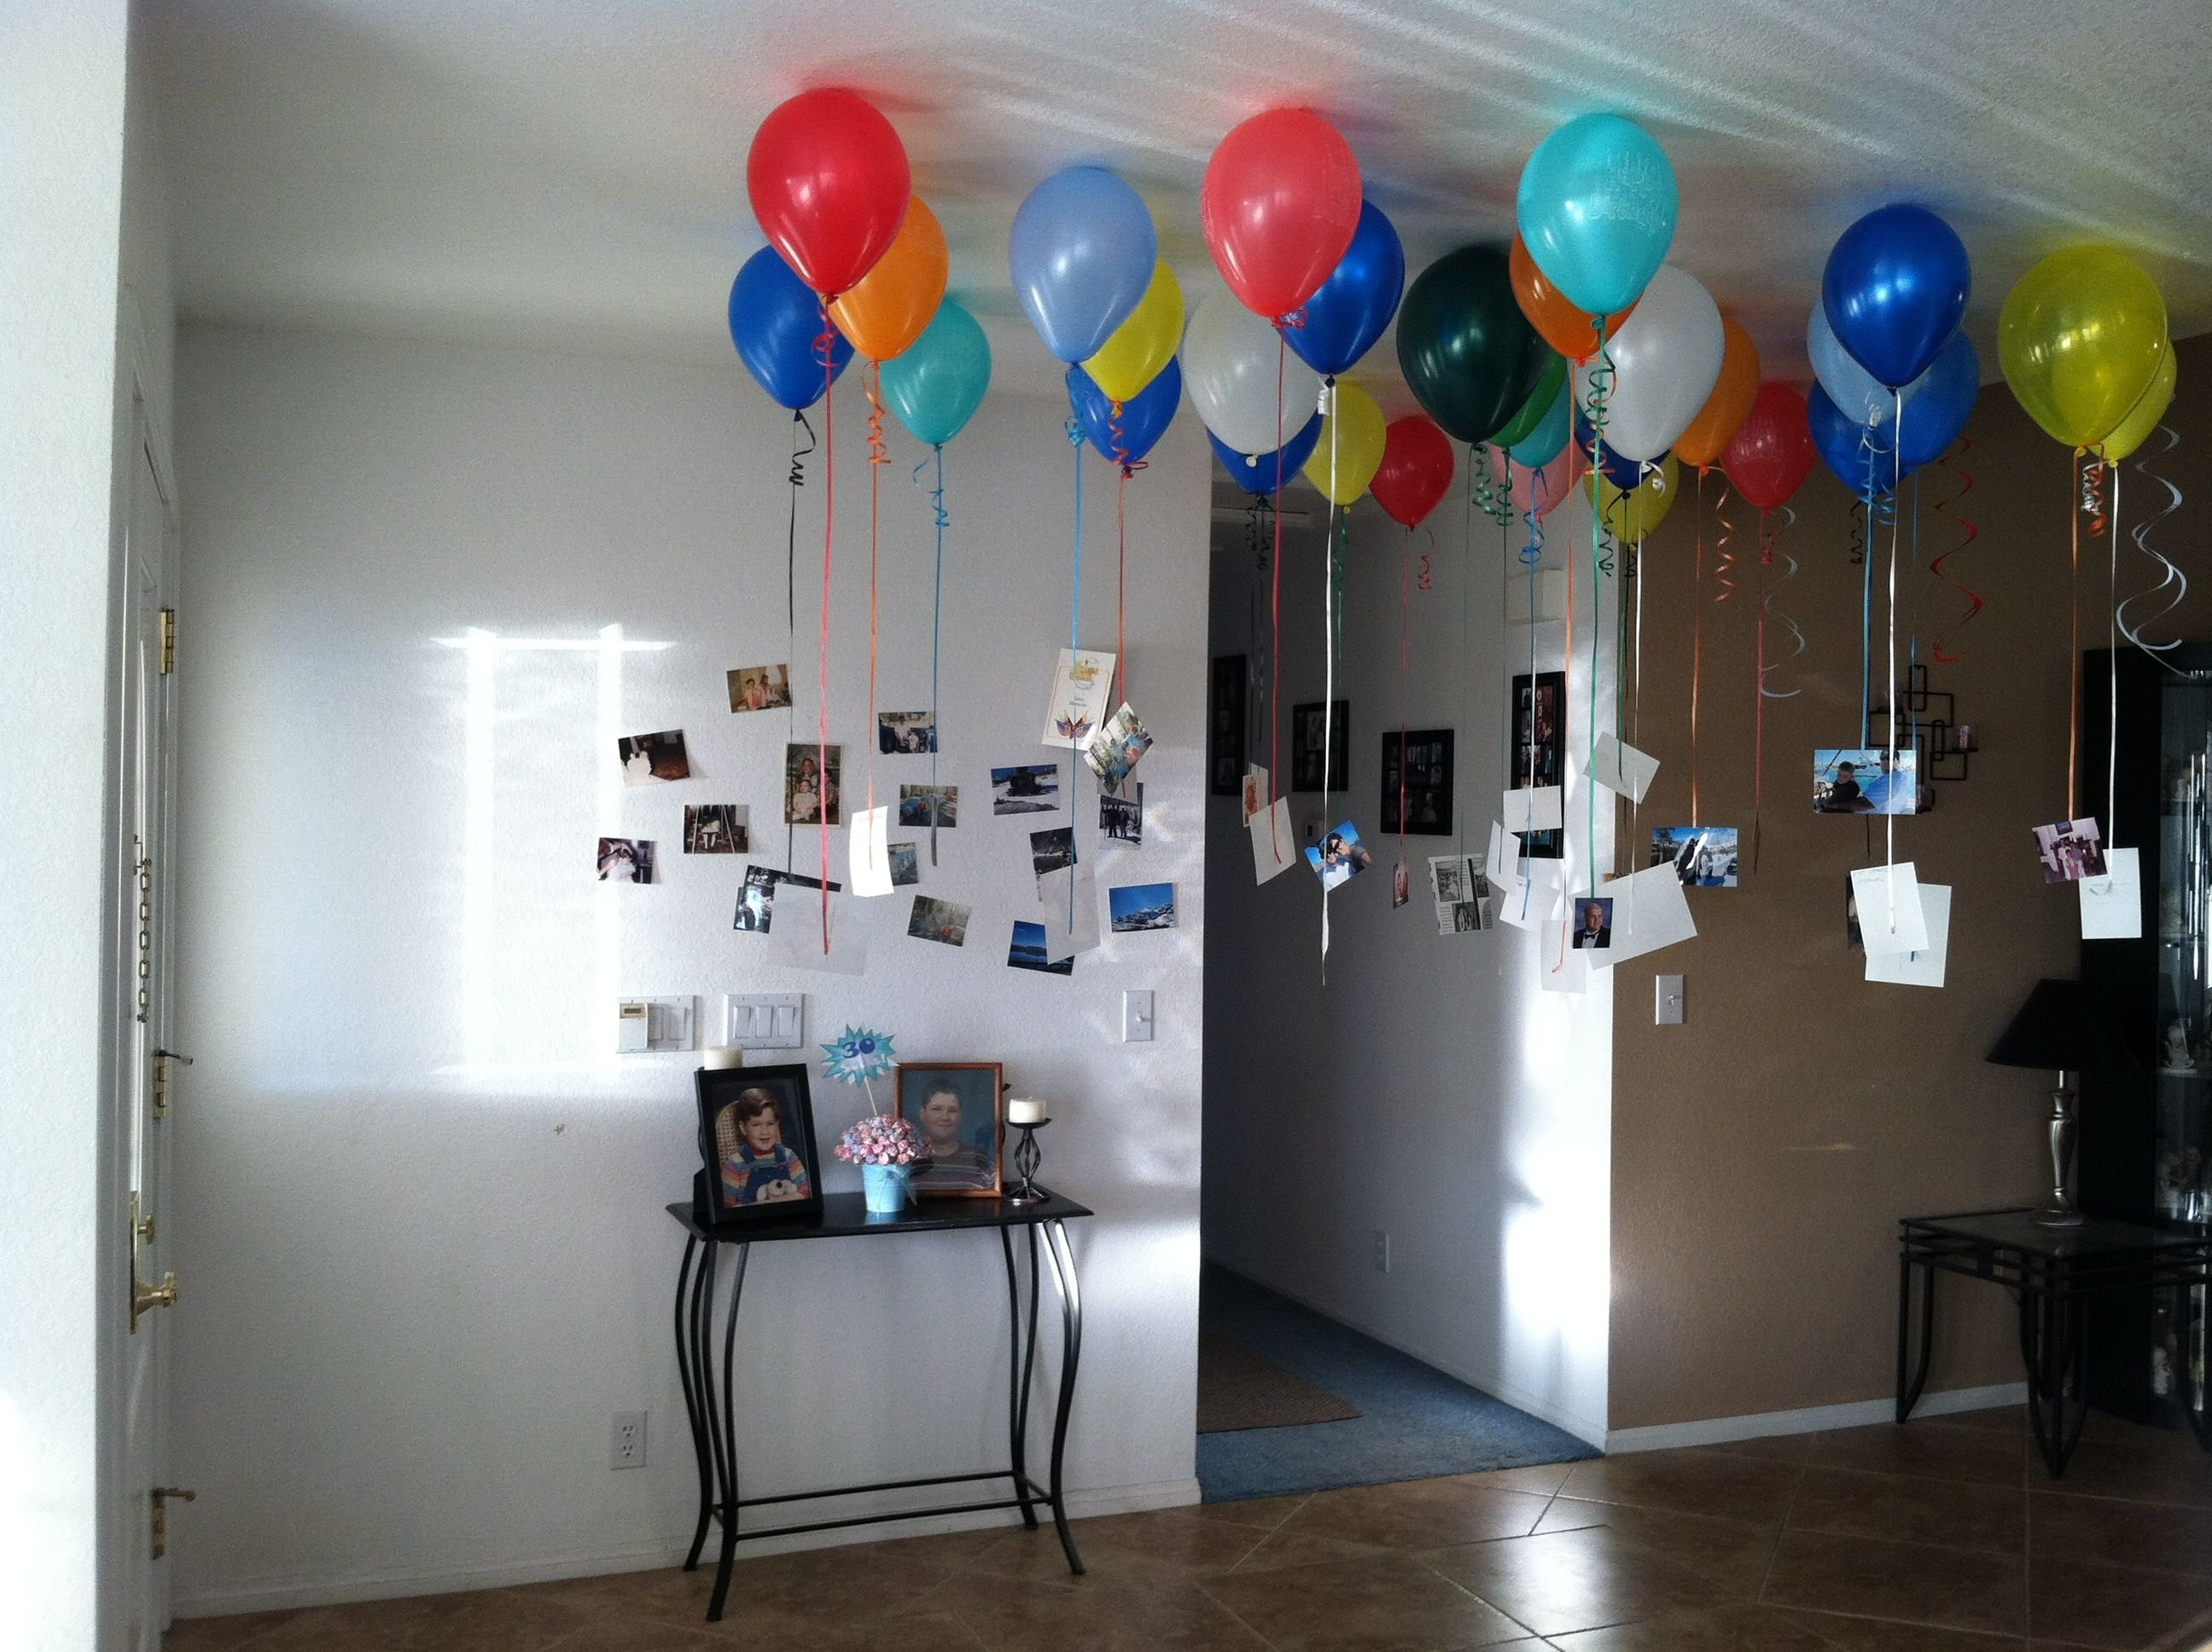 10 Ideal 50Th Birthday Gift Ideas For Husband did this in my entry way for husbands 30th birthday 30 balloons 3 2020